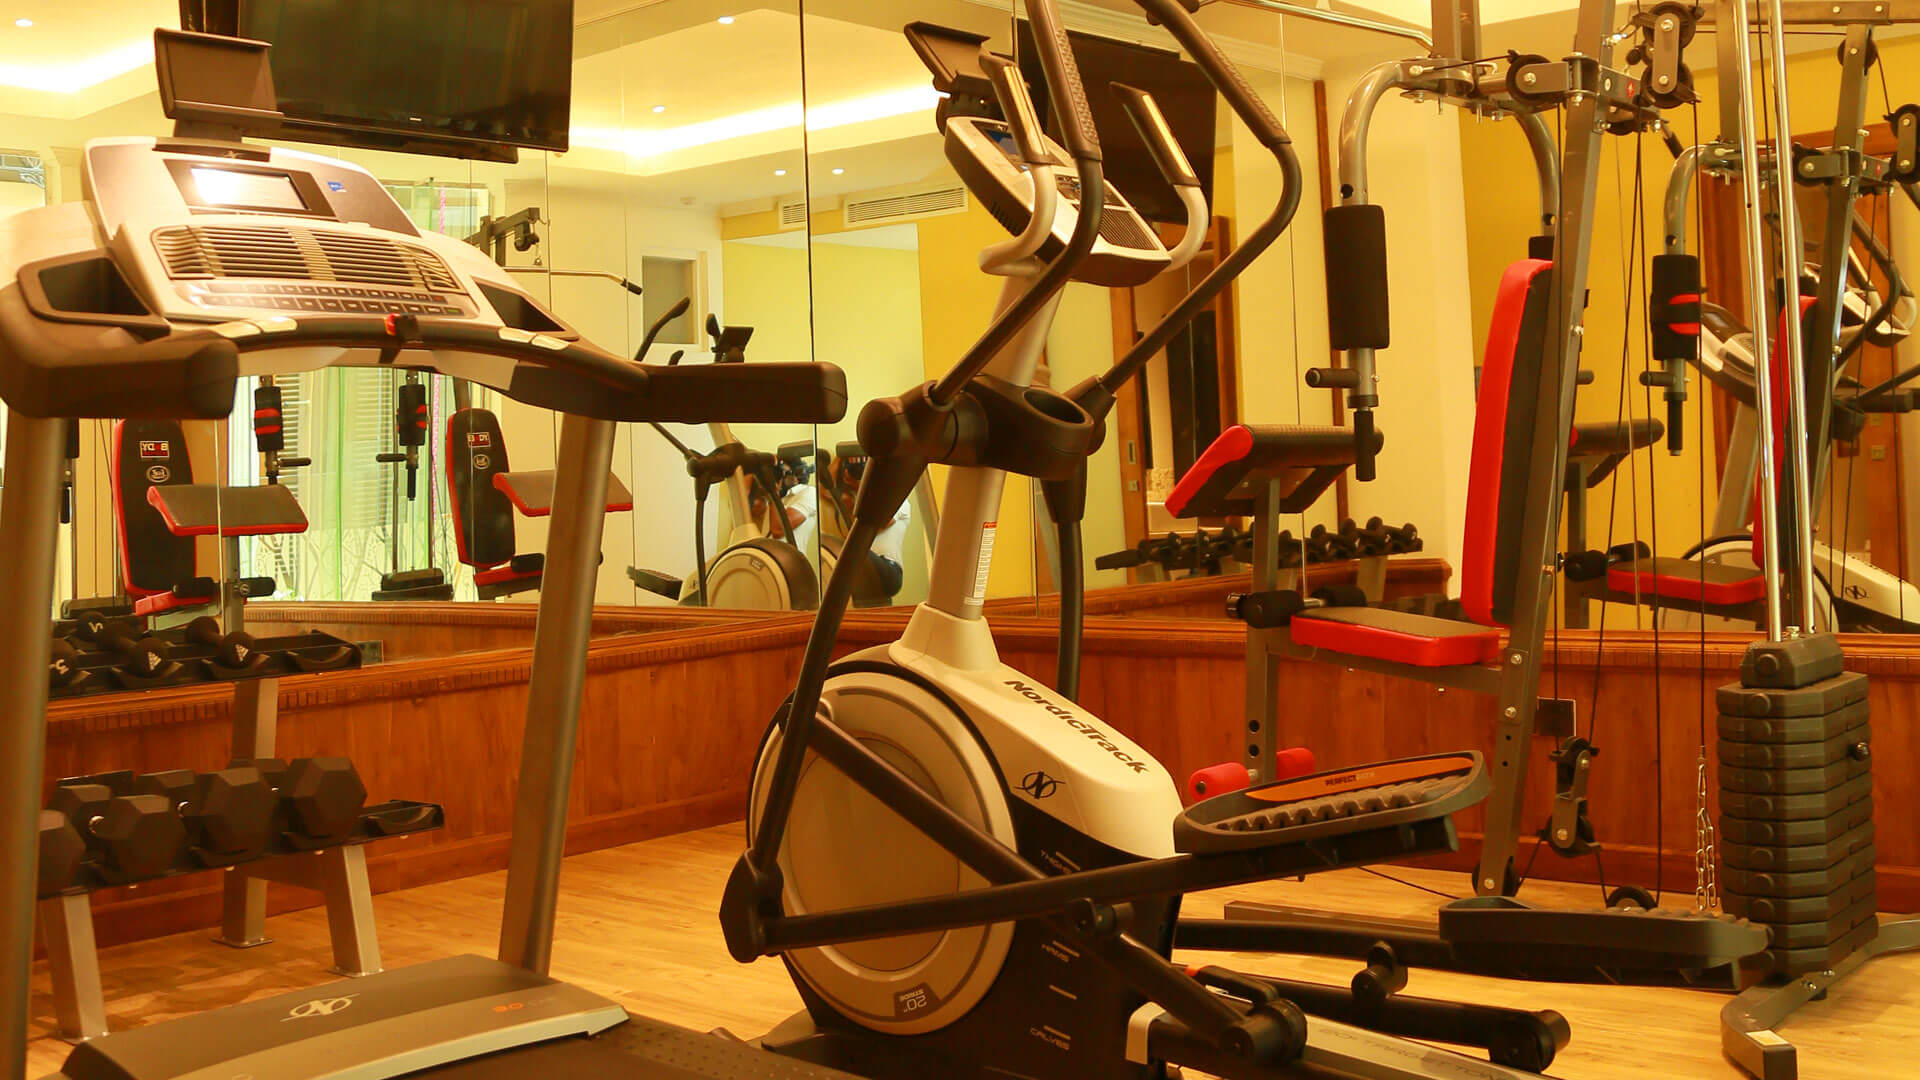 The Radh Fitness Centre